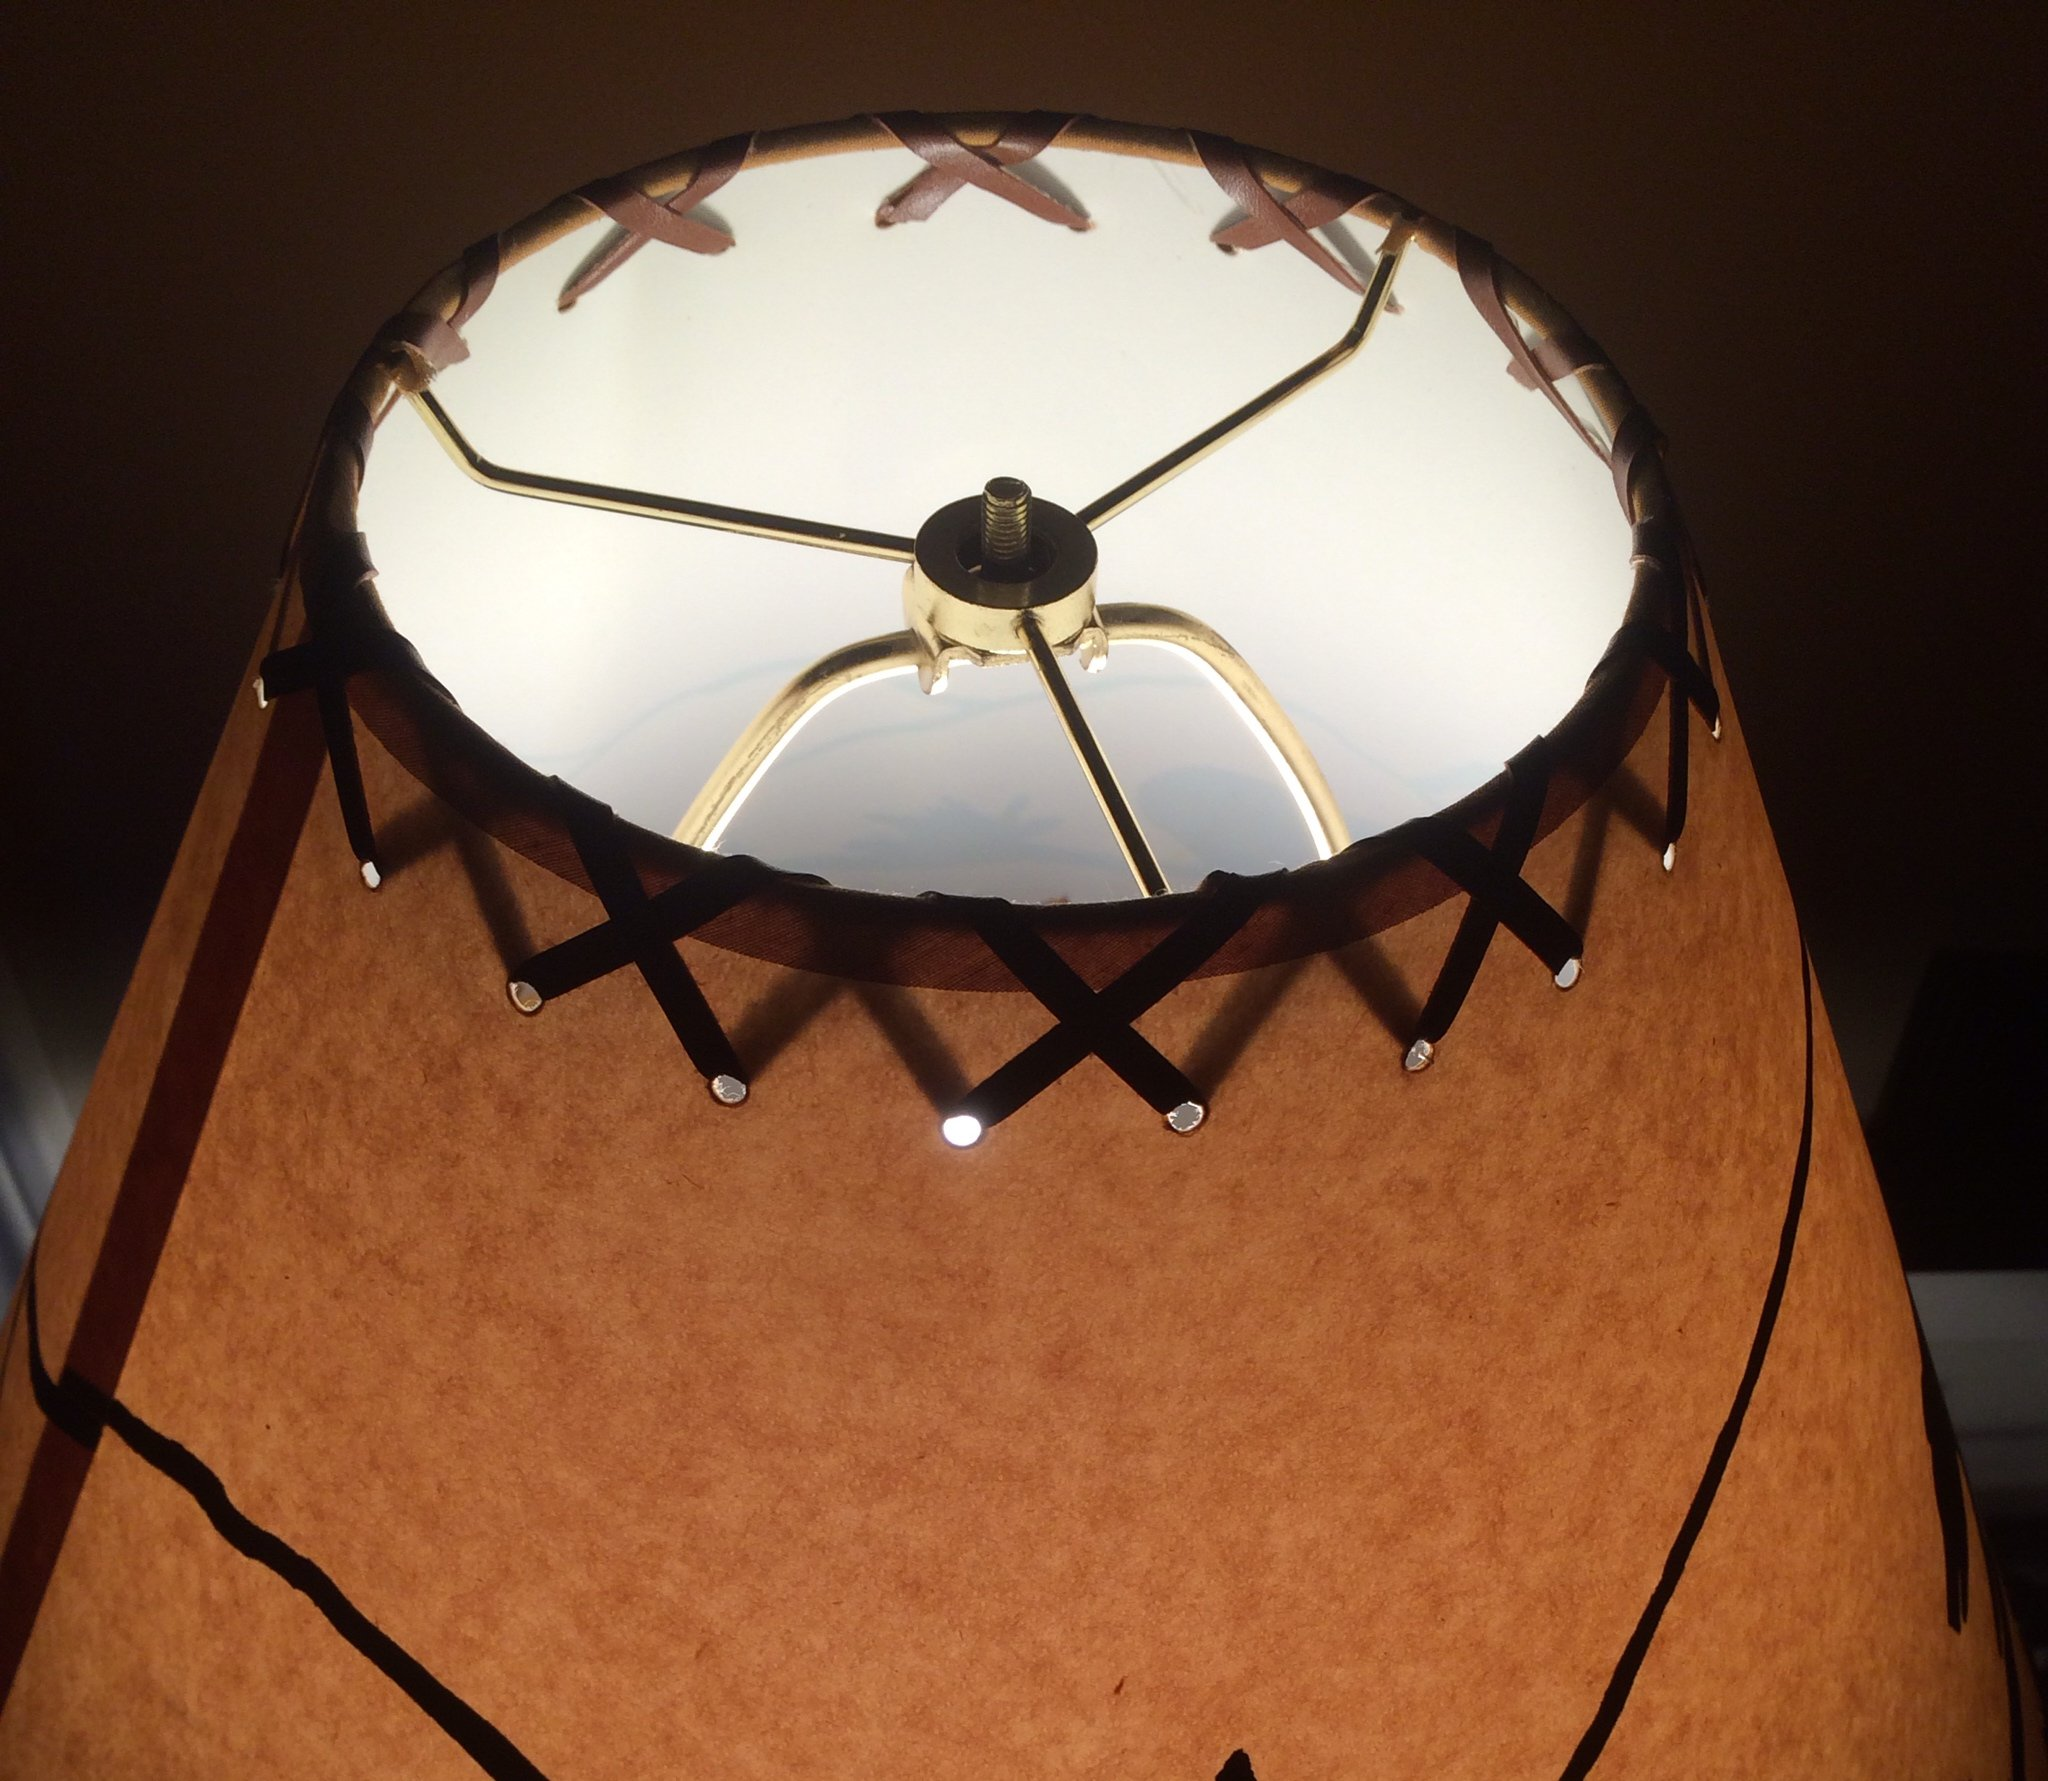 18 Inch Moose Rustic Lamp Shade.Click on Photos to View Sizing and Style Options!